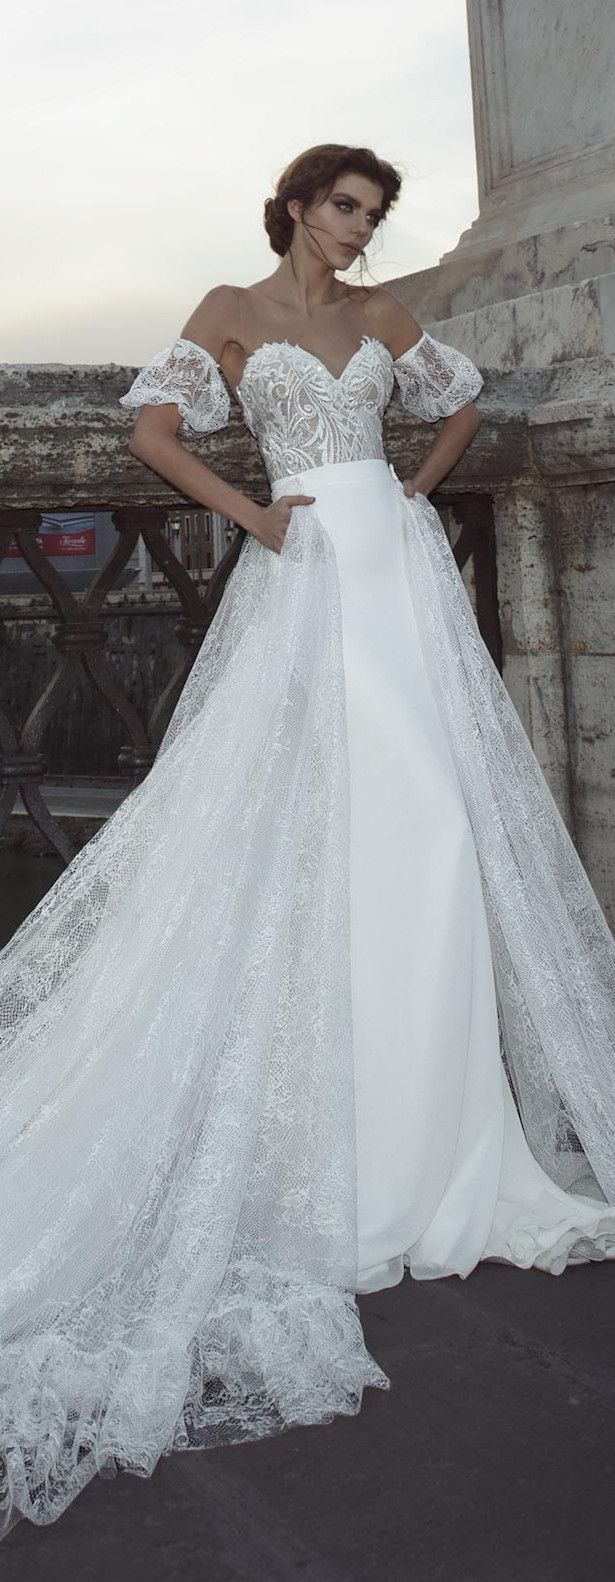 999 best Bridal Collection images on Pinterest   Wedding bridesmaid ...